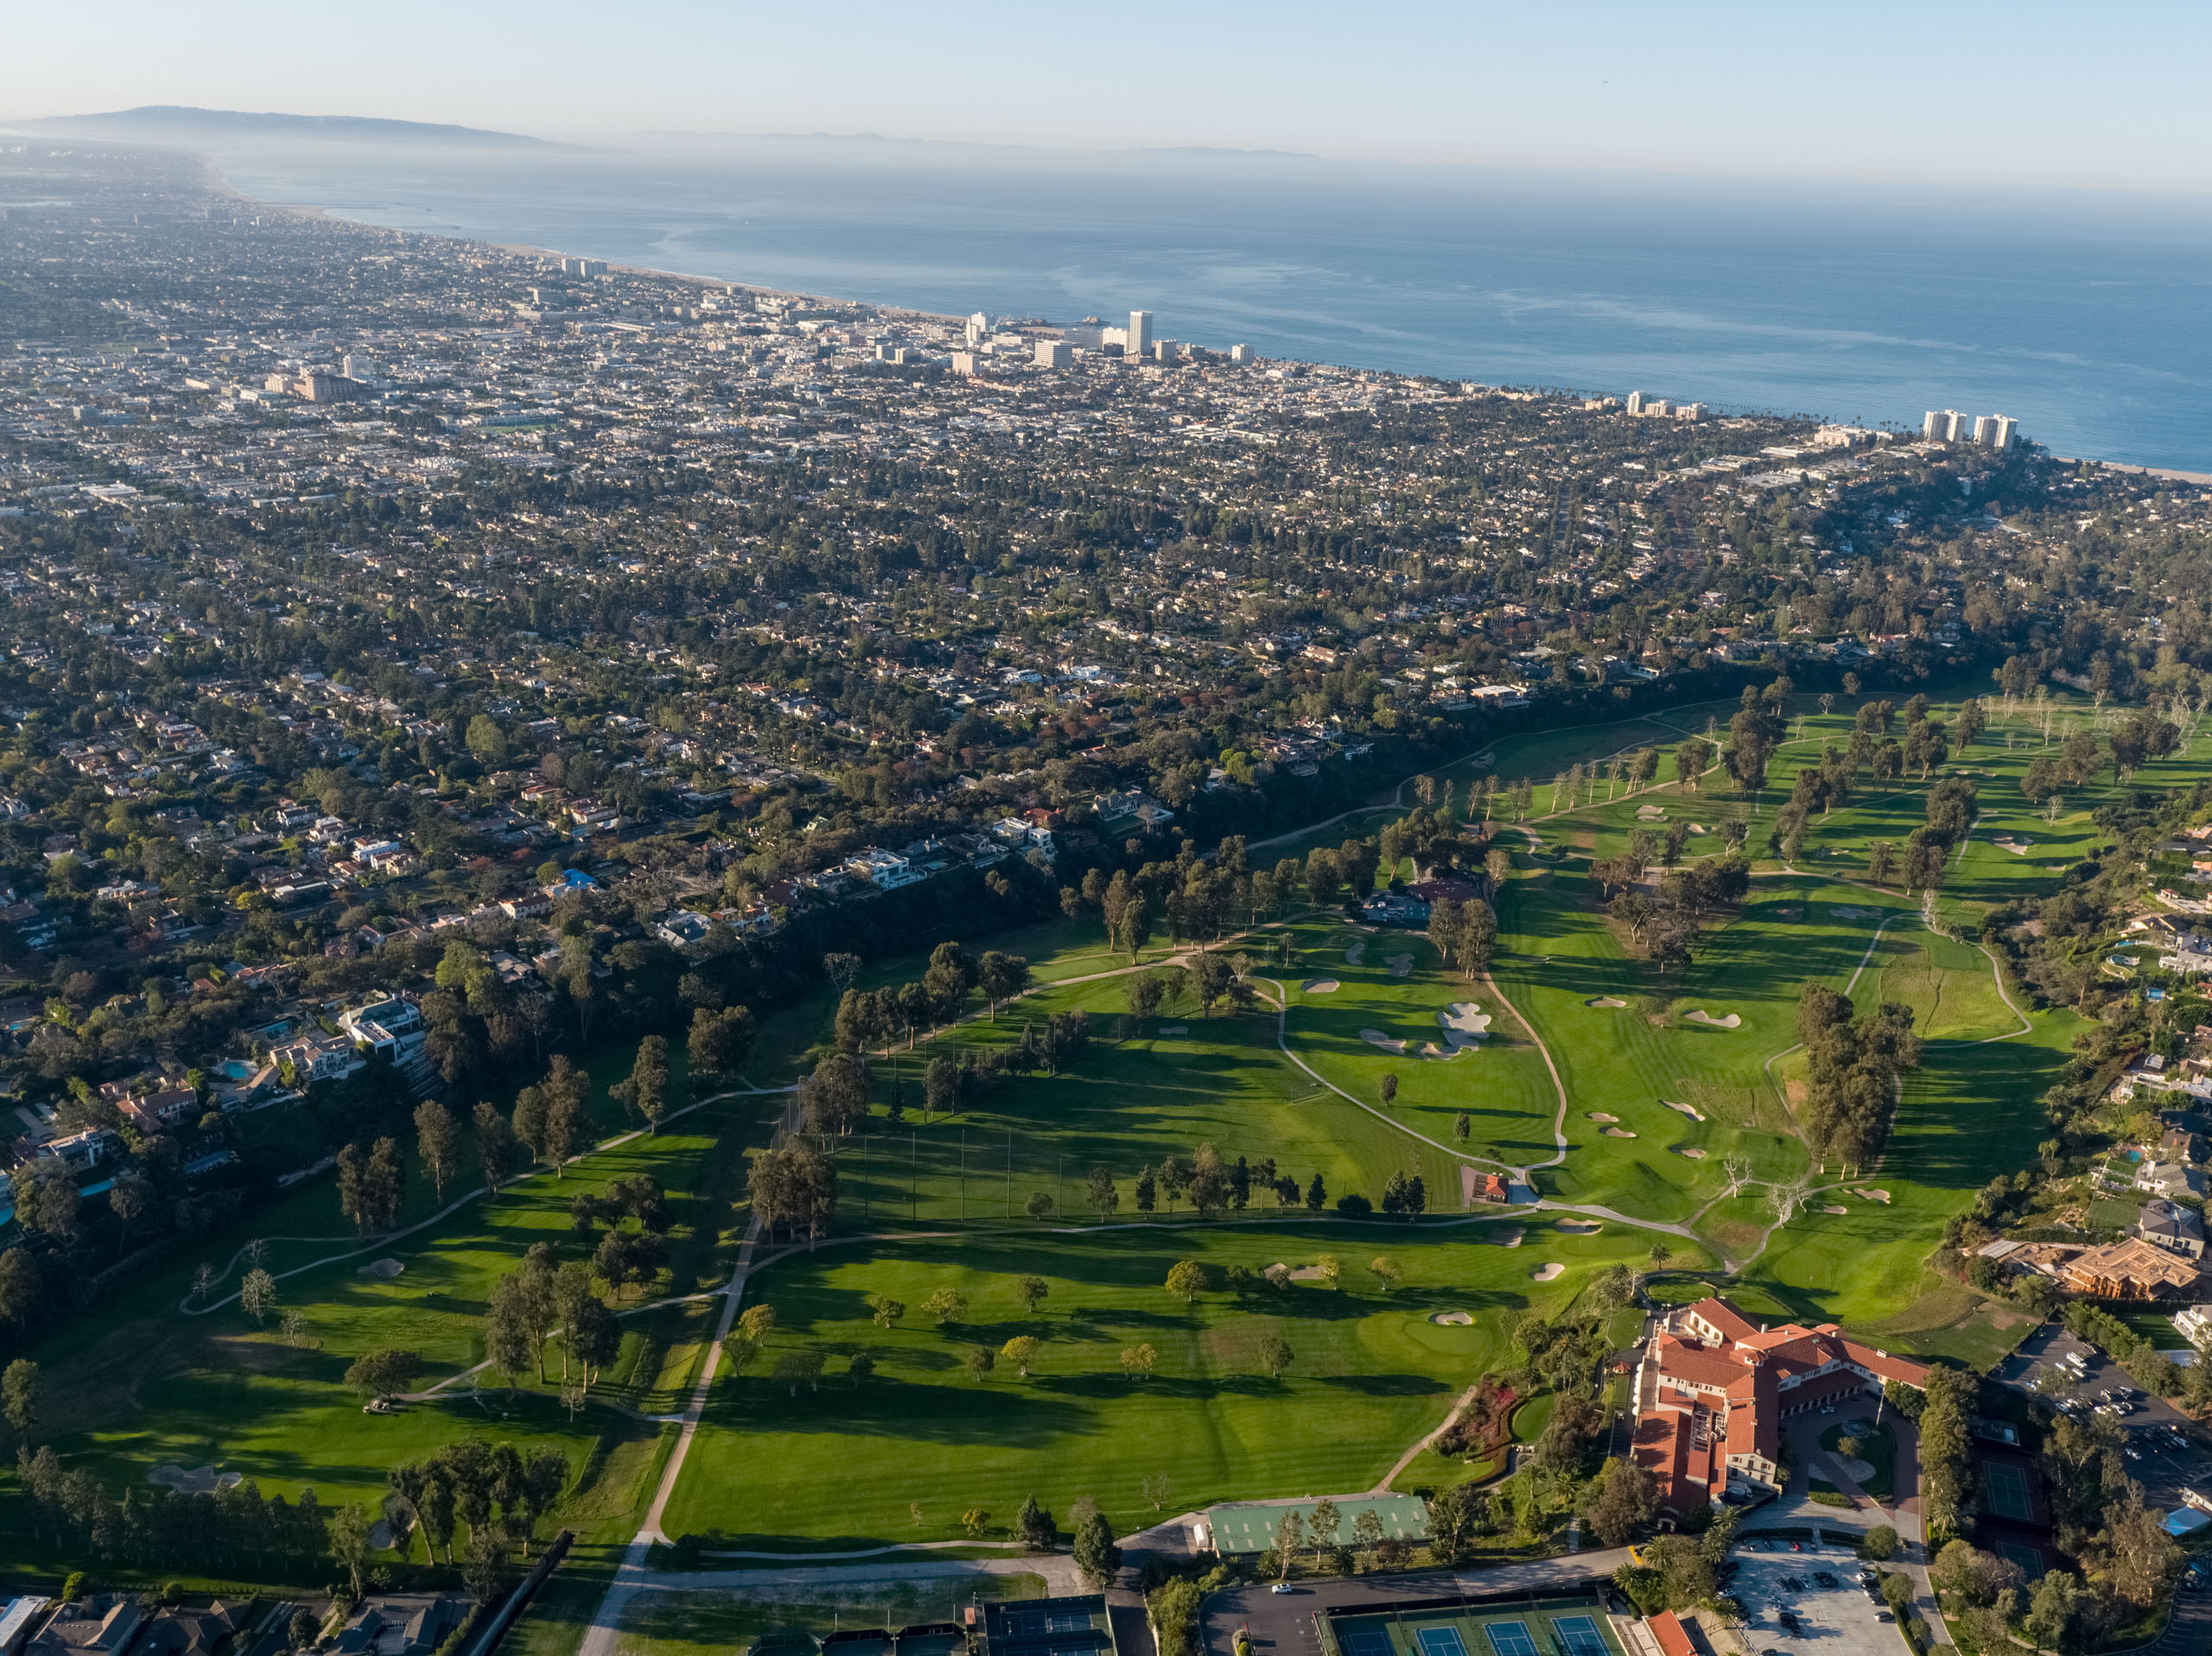 Riviera Country Club in Pacific Palisades, California